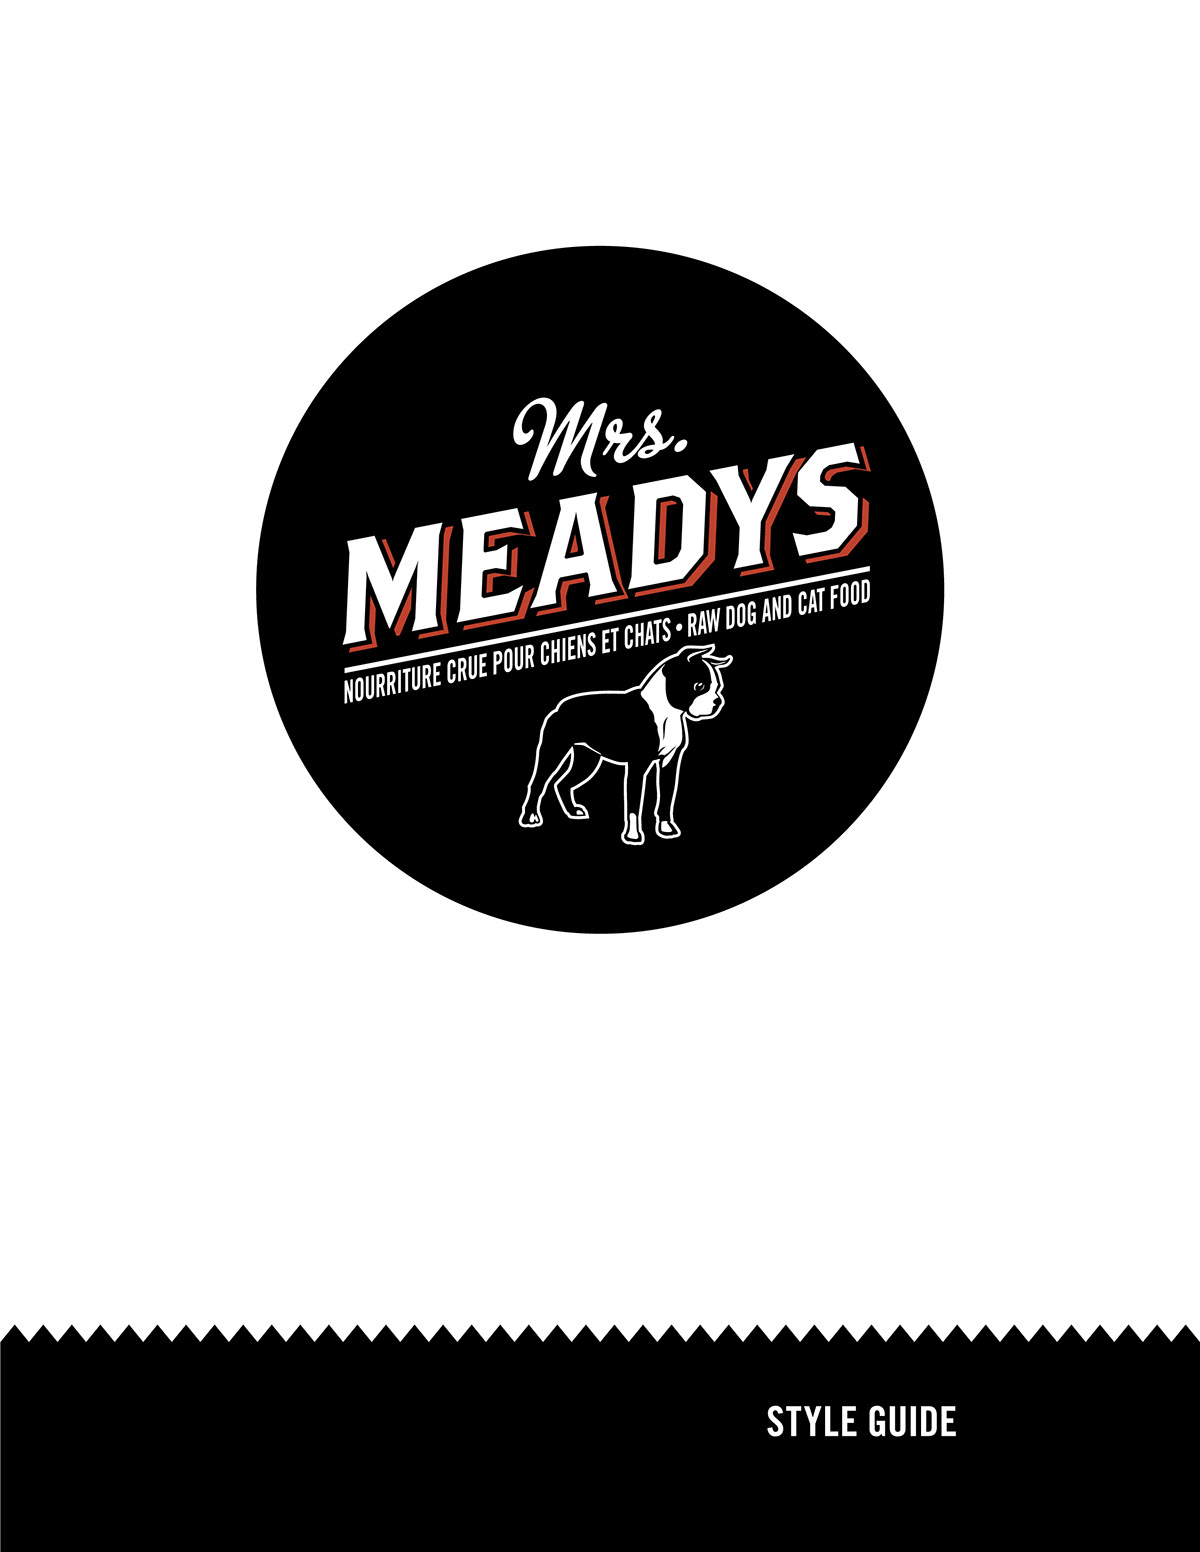 MRS. MEADYS BRAND IDENTITY DESIGN